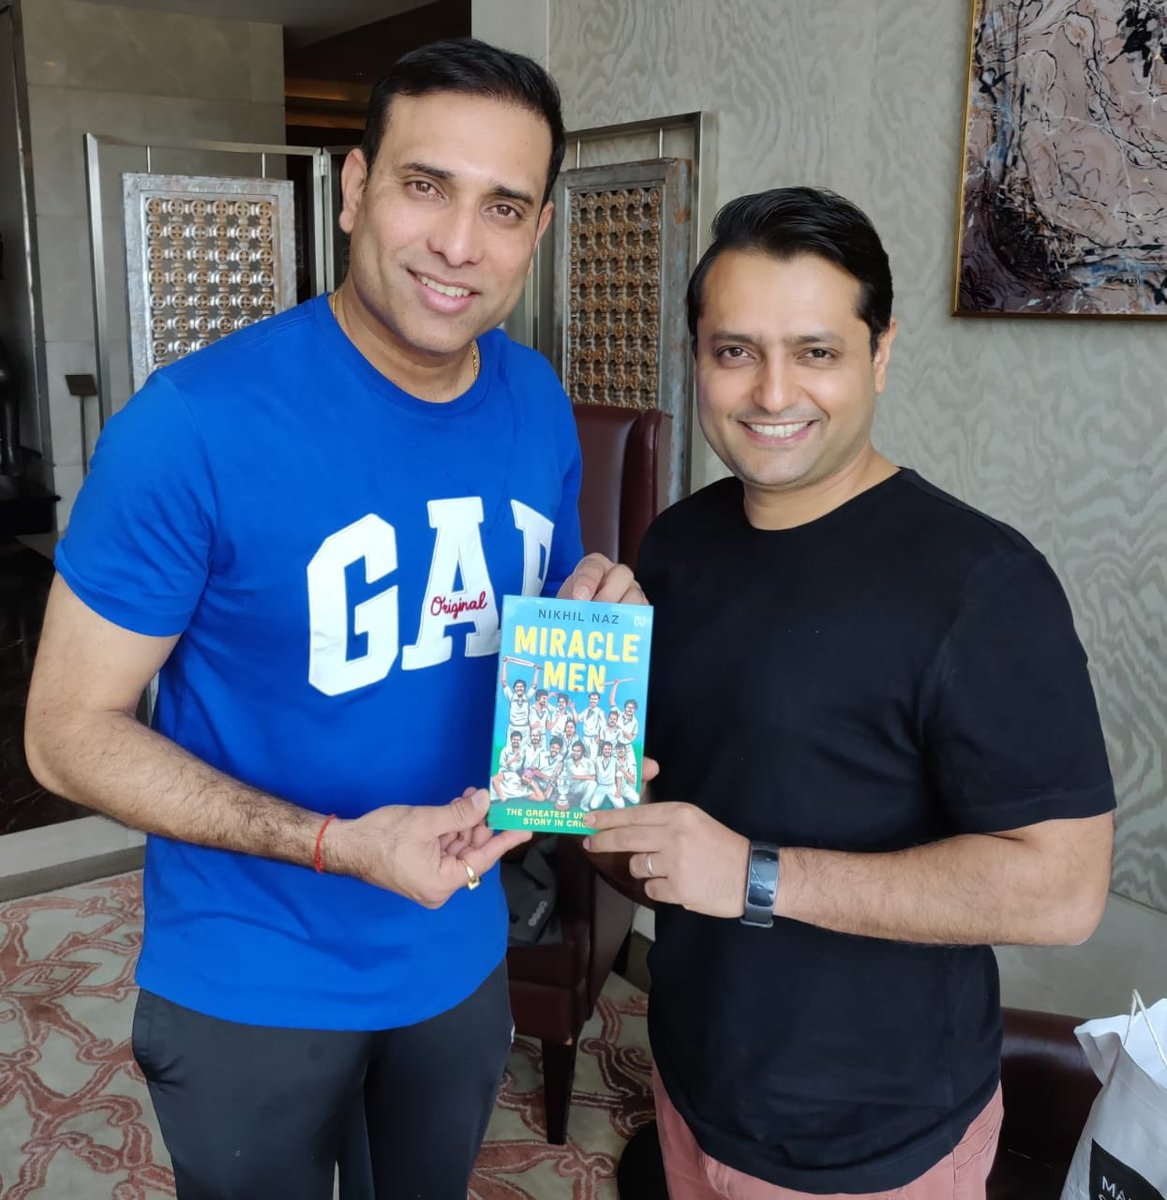 Congratulations ⁦@NikhilNaz⁩ on your new book 'Miracle Men' Thoroughly enjoyed reading it. Very good account of 1983 India's World Cup victory.